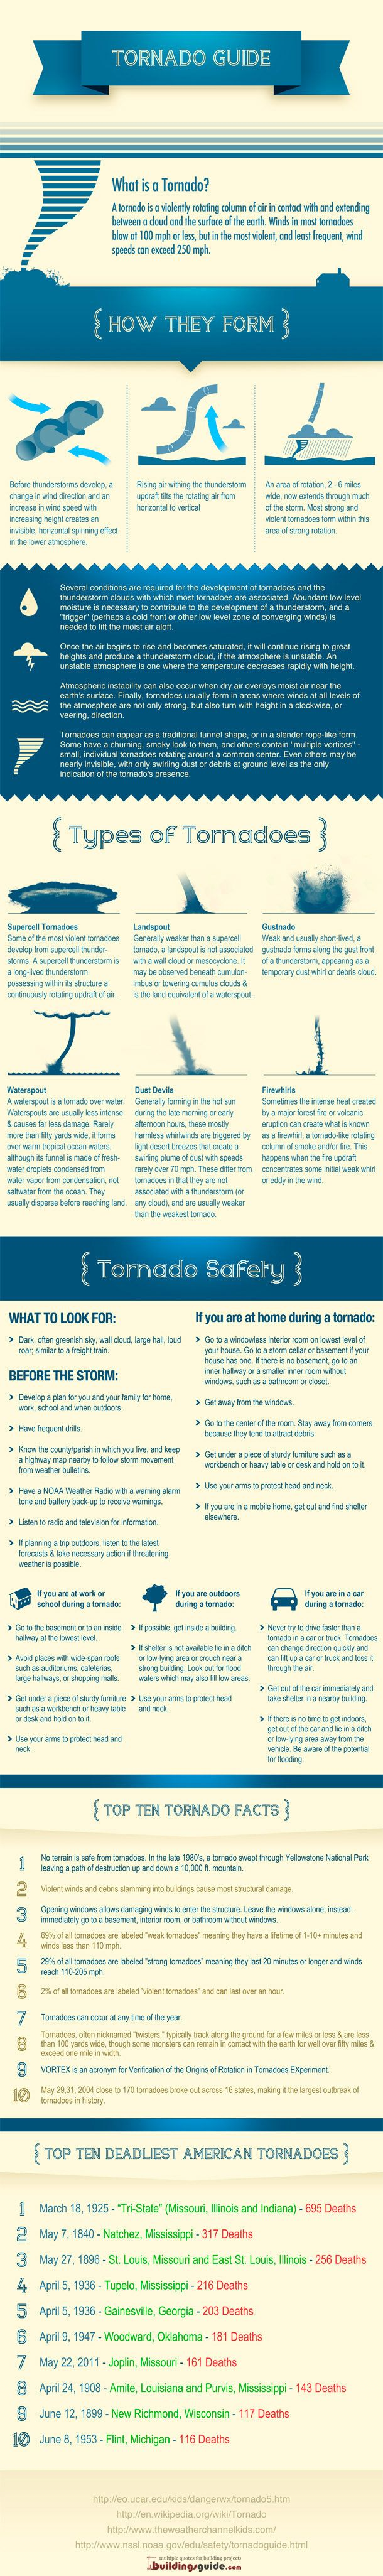 Tornado Facts & Safety Tips  Tornadoes can have devastating effects on homes, businesses, and communities as a whole. The tornado guide infographic below includes facts, safety tips and information about tornadoes such as how tornadoes form, types of tornadoes, tornado safety and the top 10 deadliest and most destructive tornadoes in history.